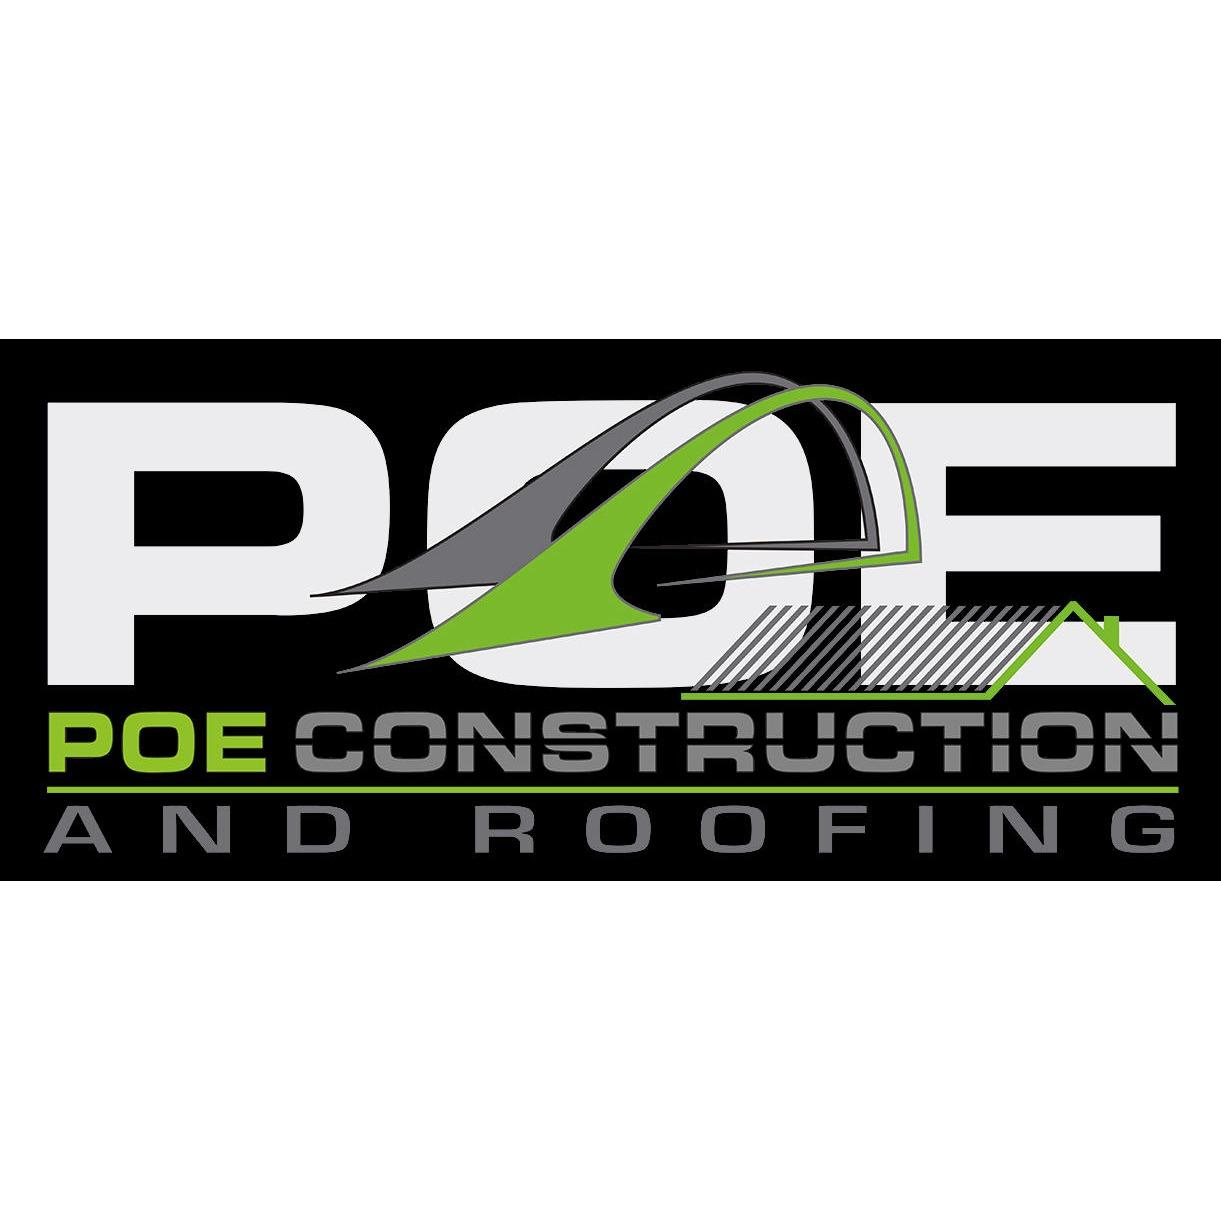 Poe Construction and Roofing